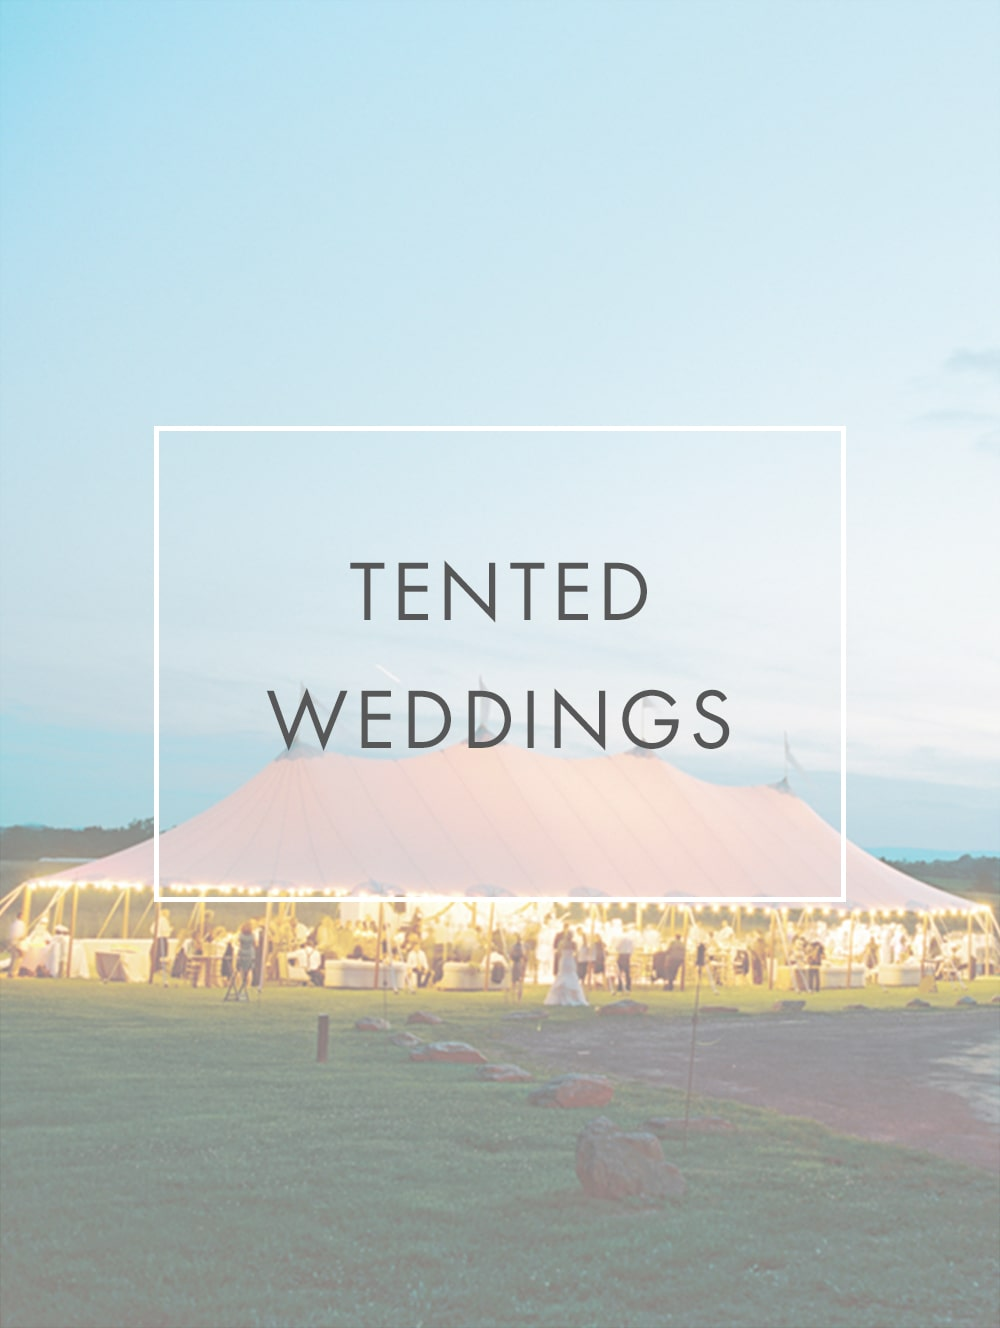 Tented_Weddings-mobile-min.jpg